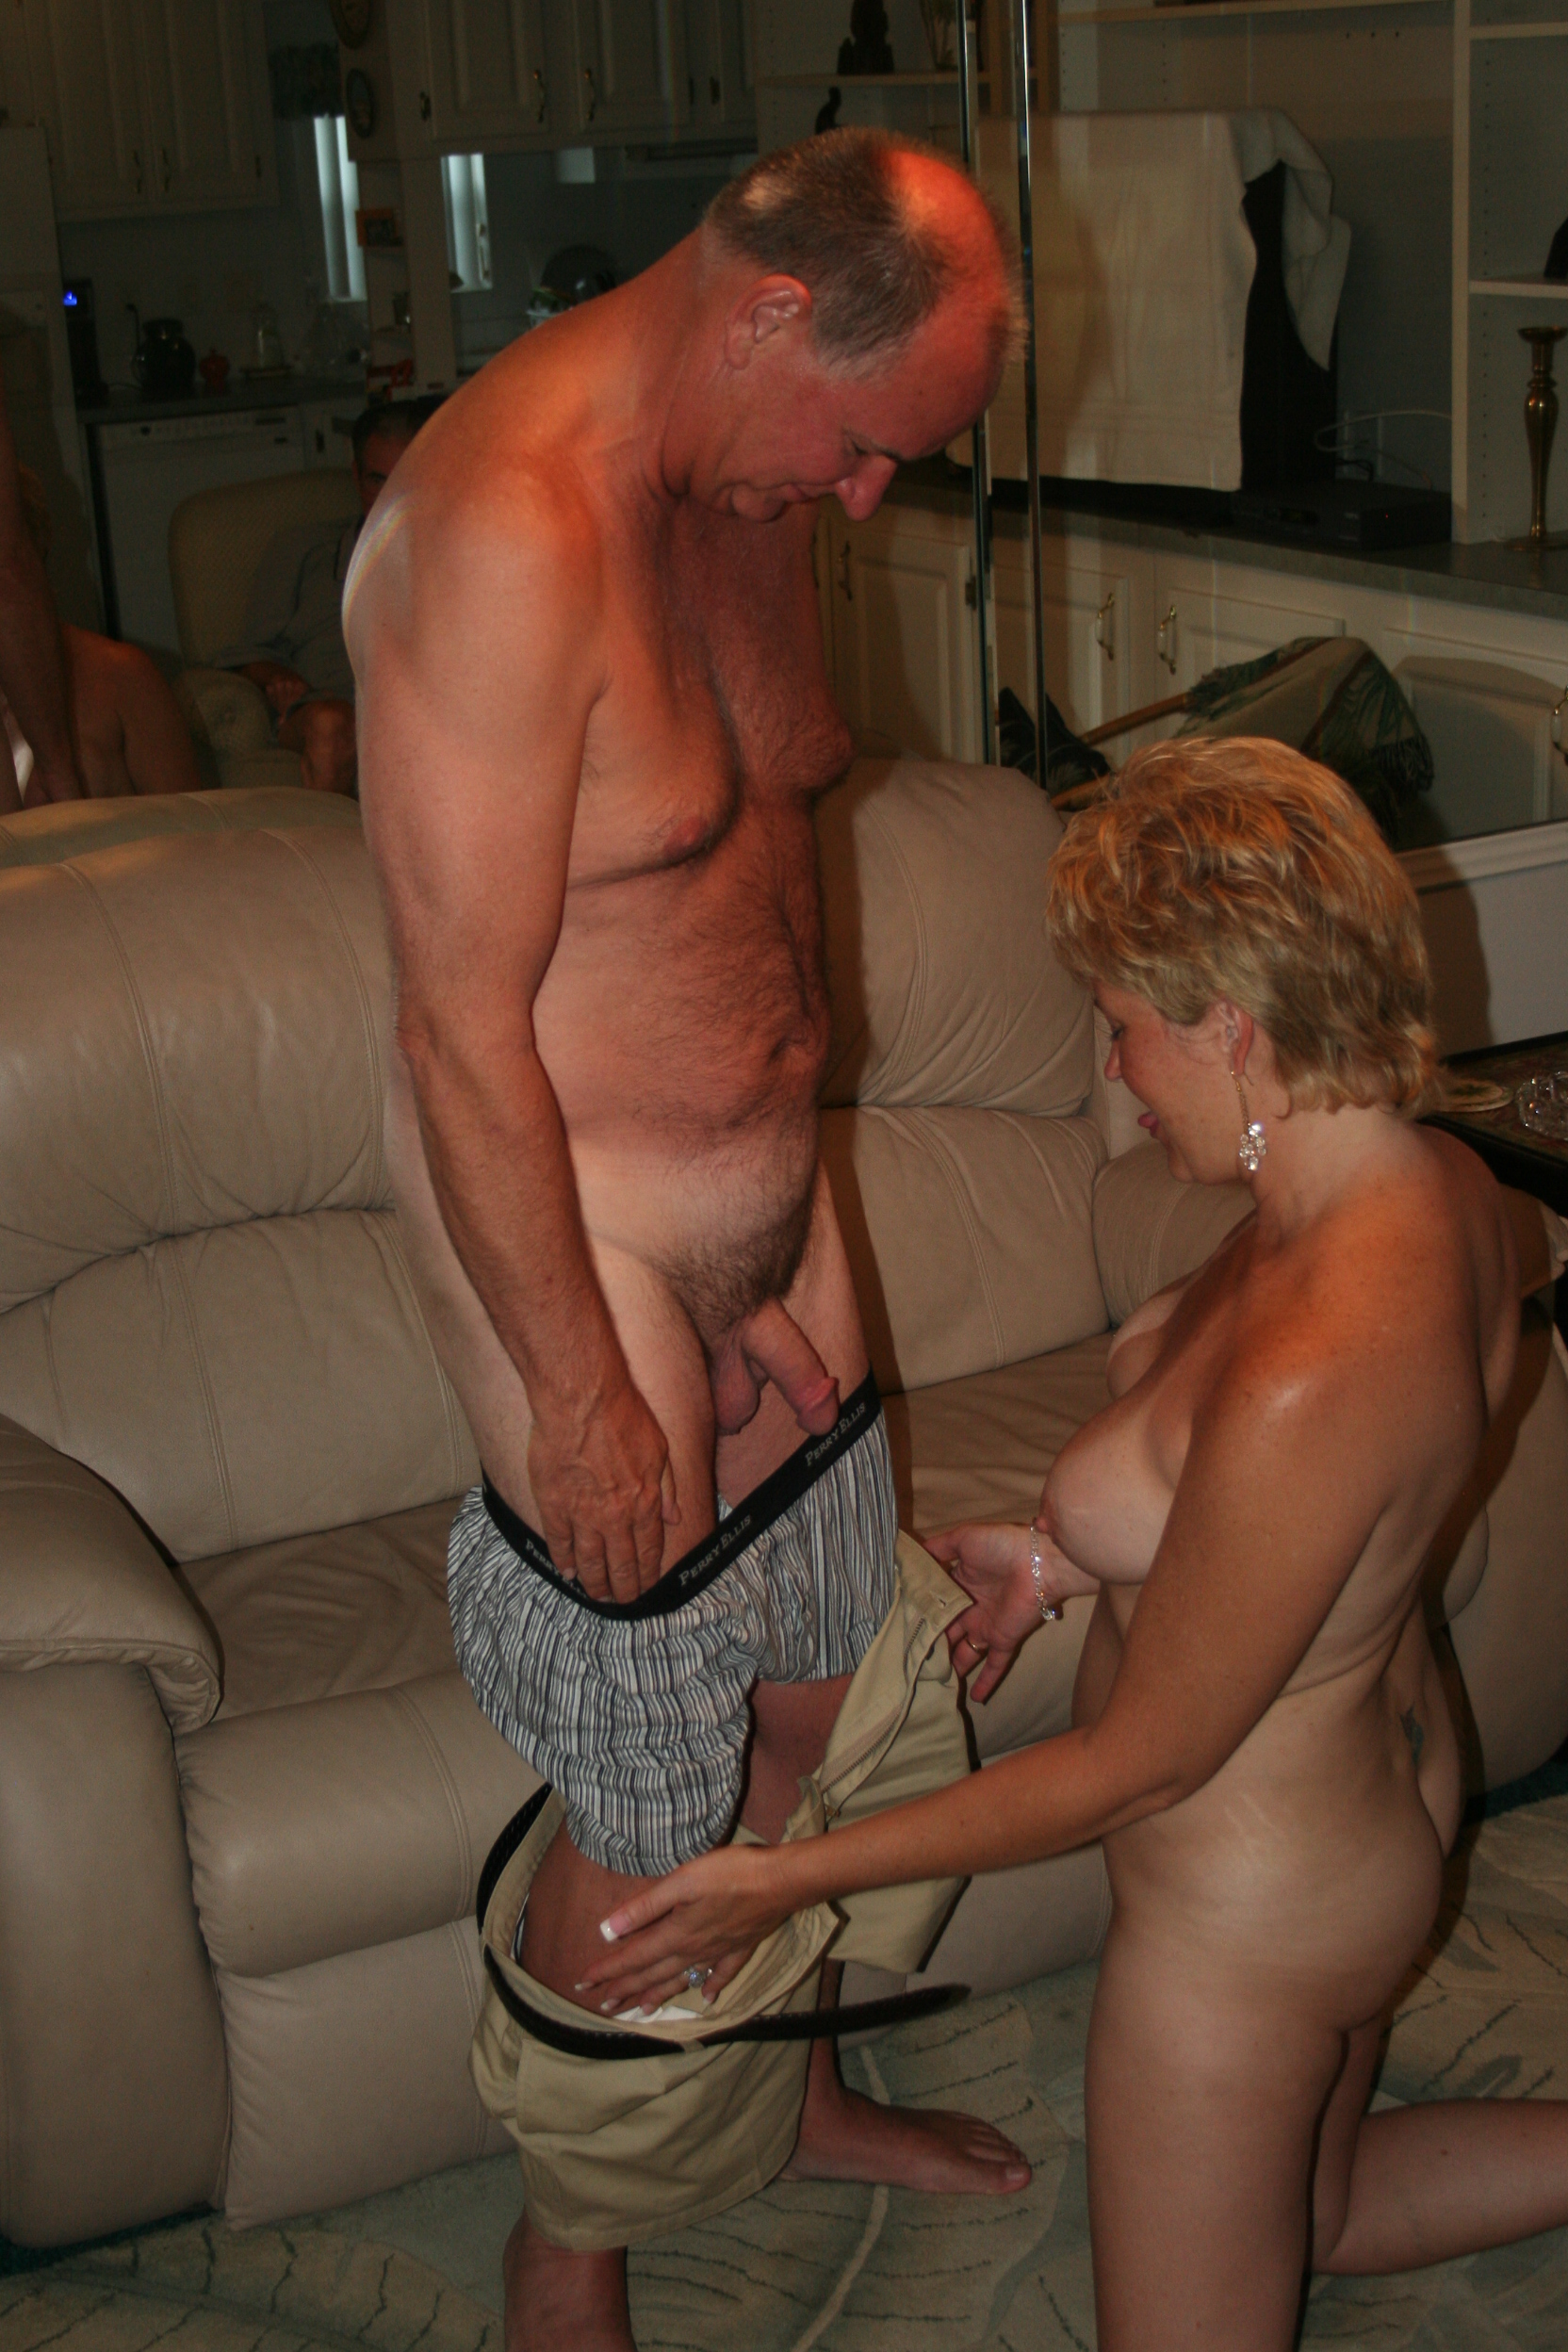 grab and squeeze his balls doggie